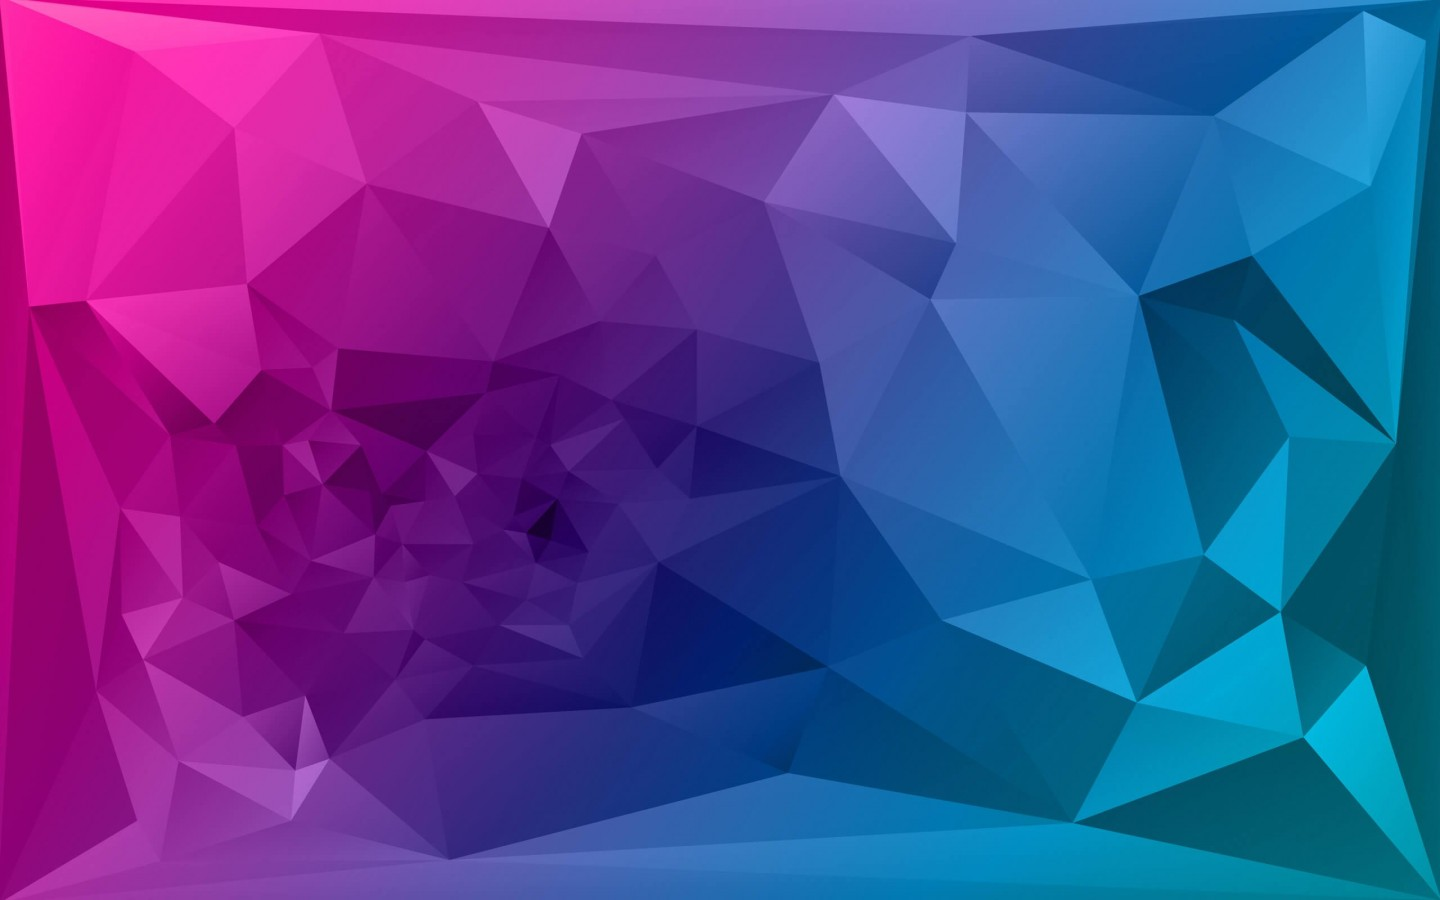 Purple Polygonal Background Wallpaper for Desktop 1440x900